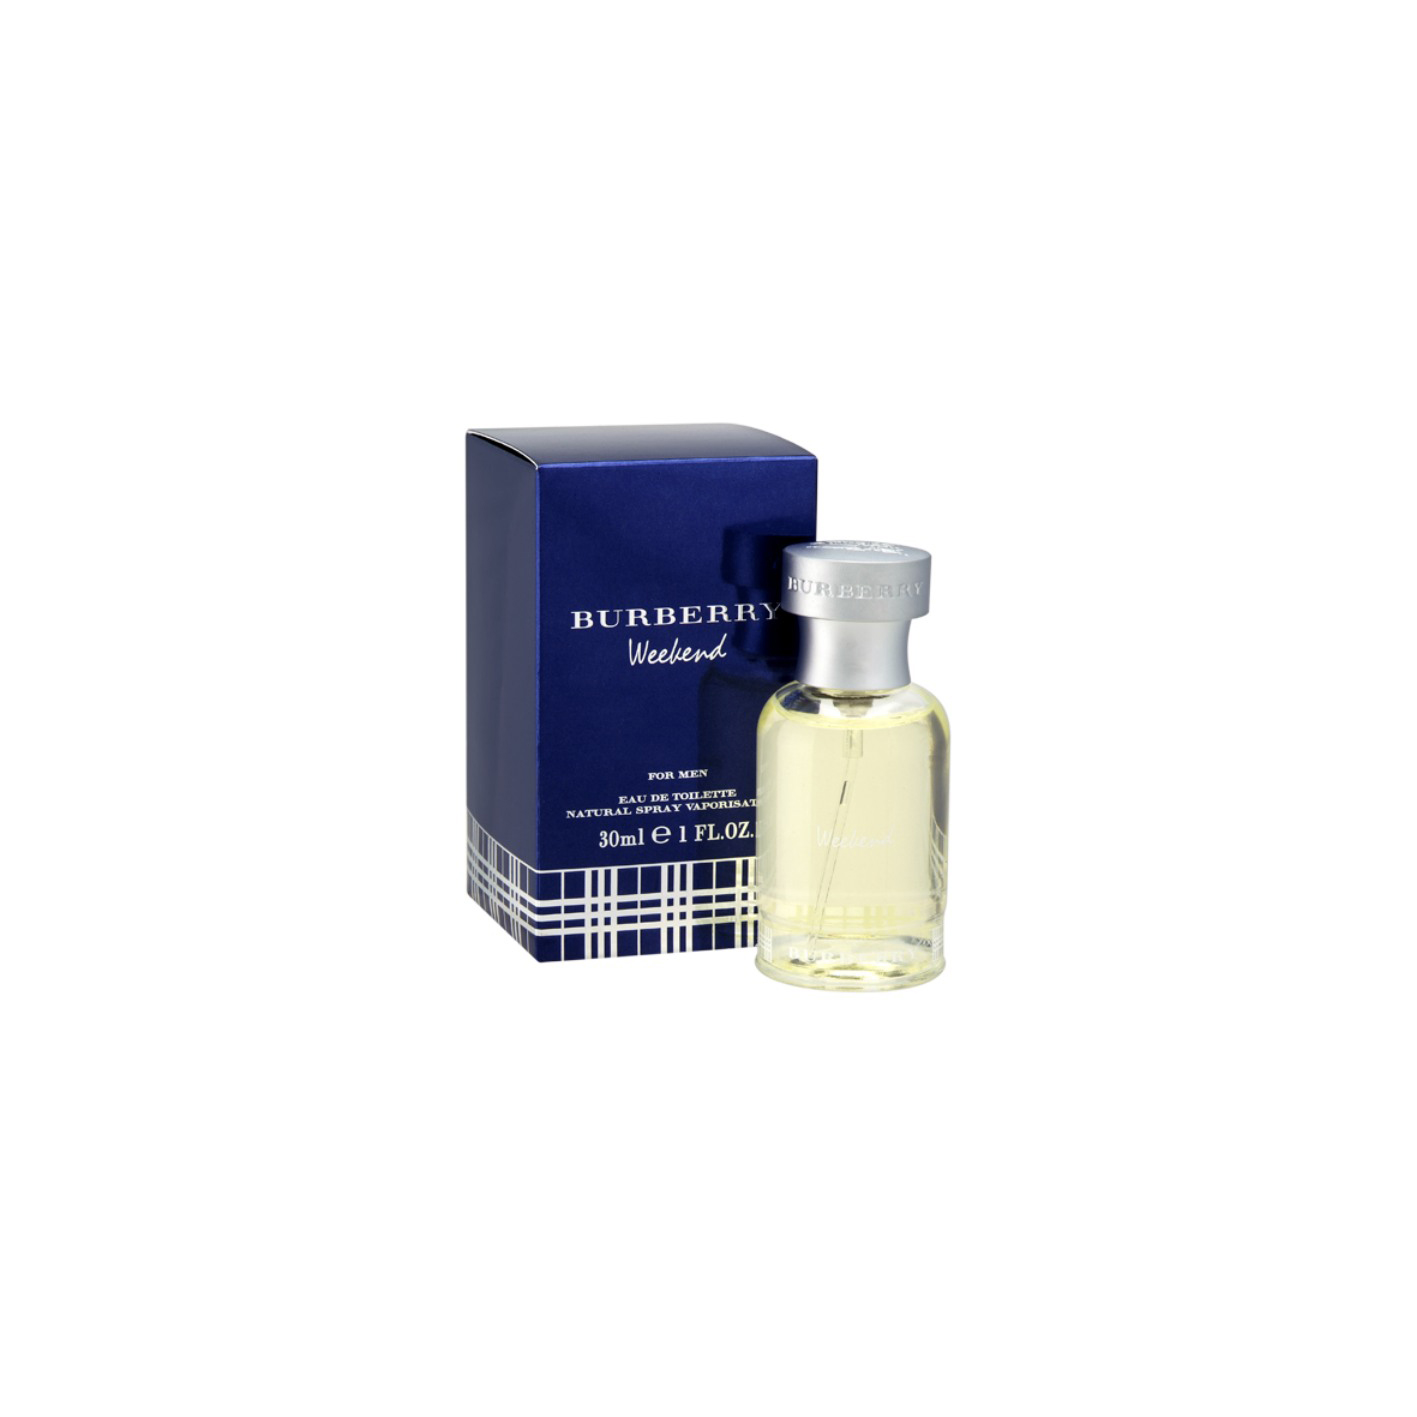 Burberry Weekend For Man eau de toilette 30 ml vapo